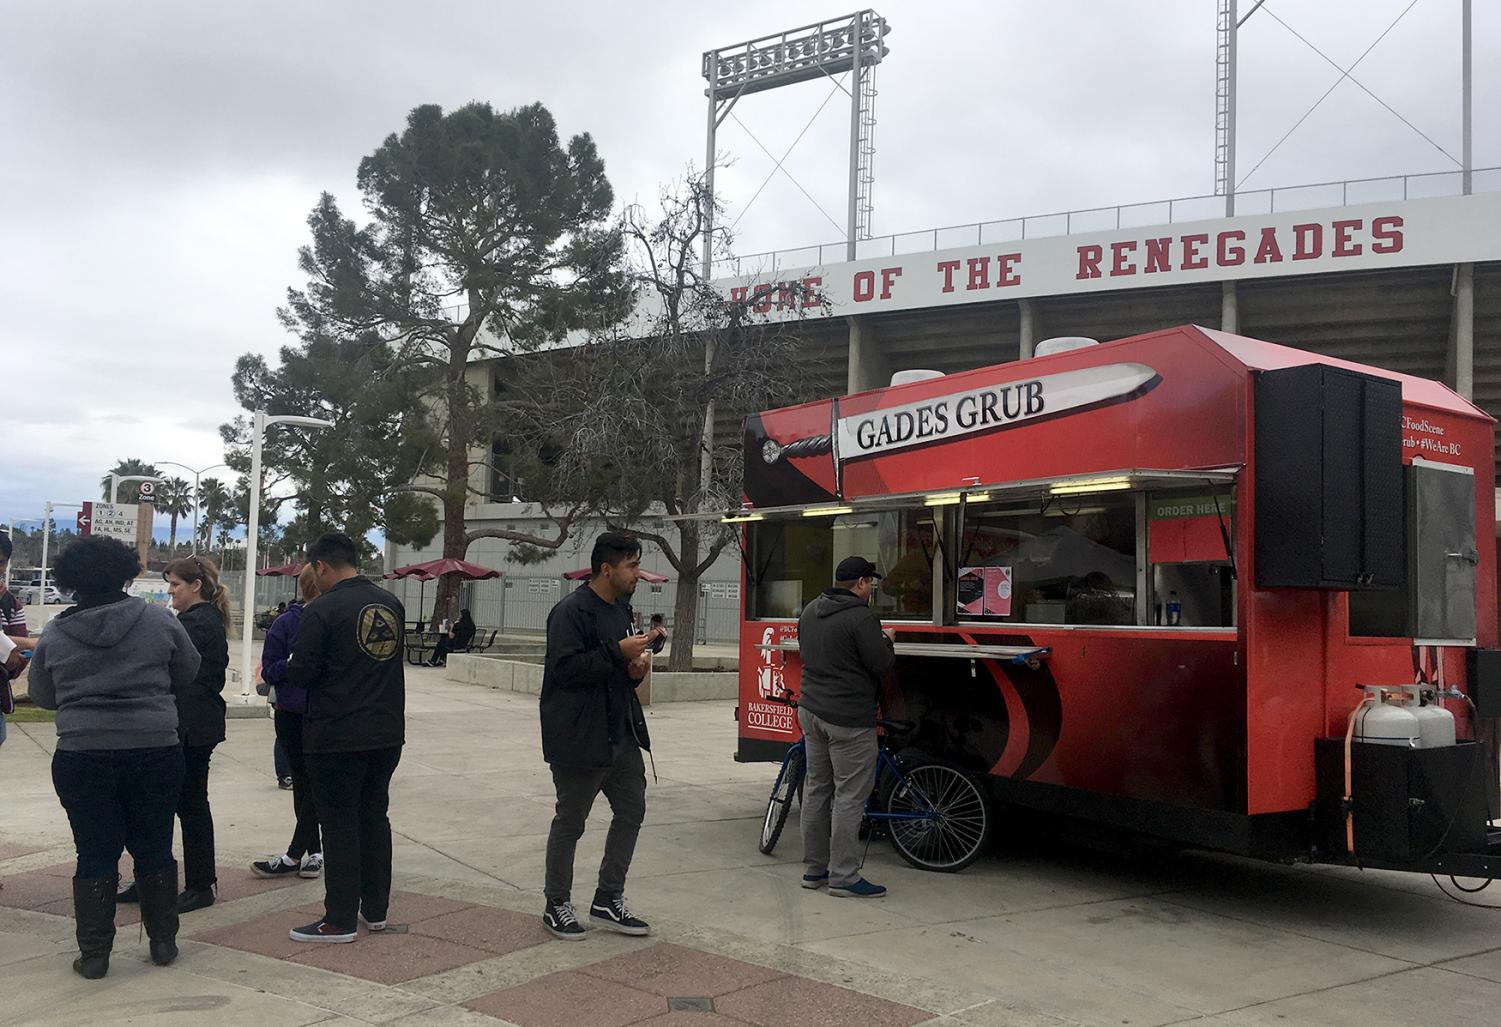 BC students wait for the next round of free samples at the Gades Grub food truck.